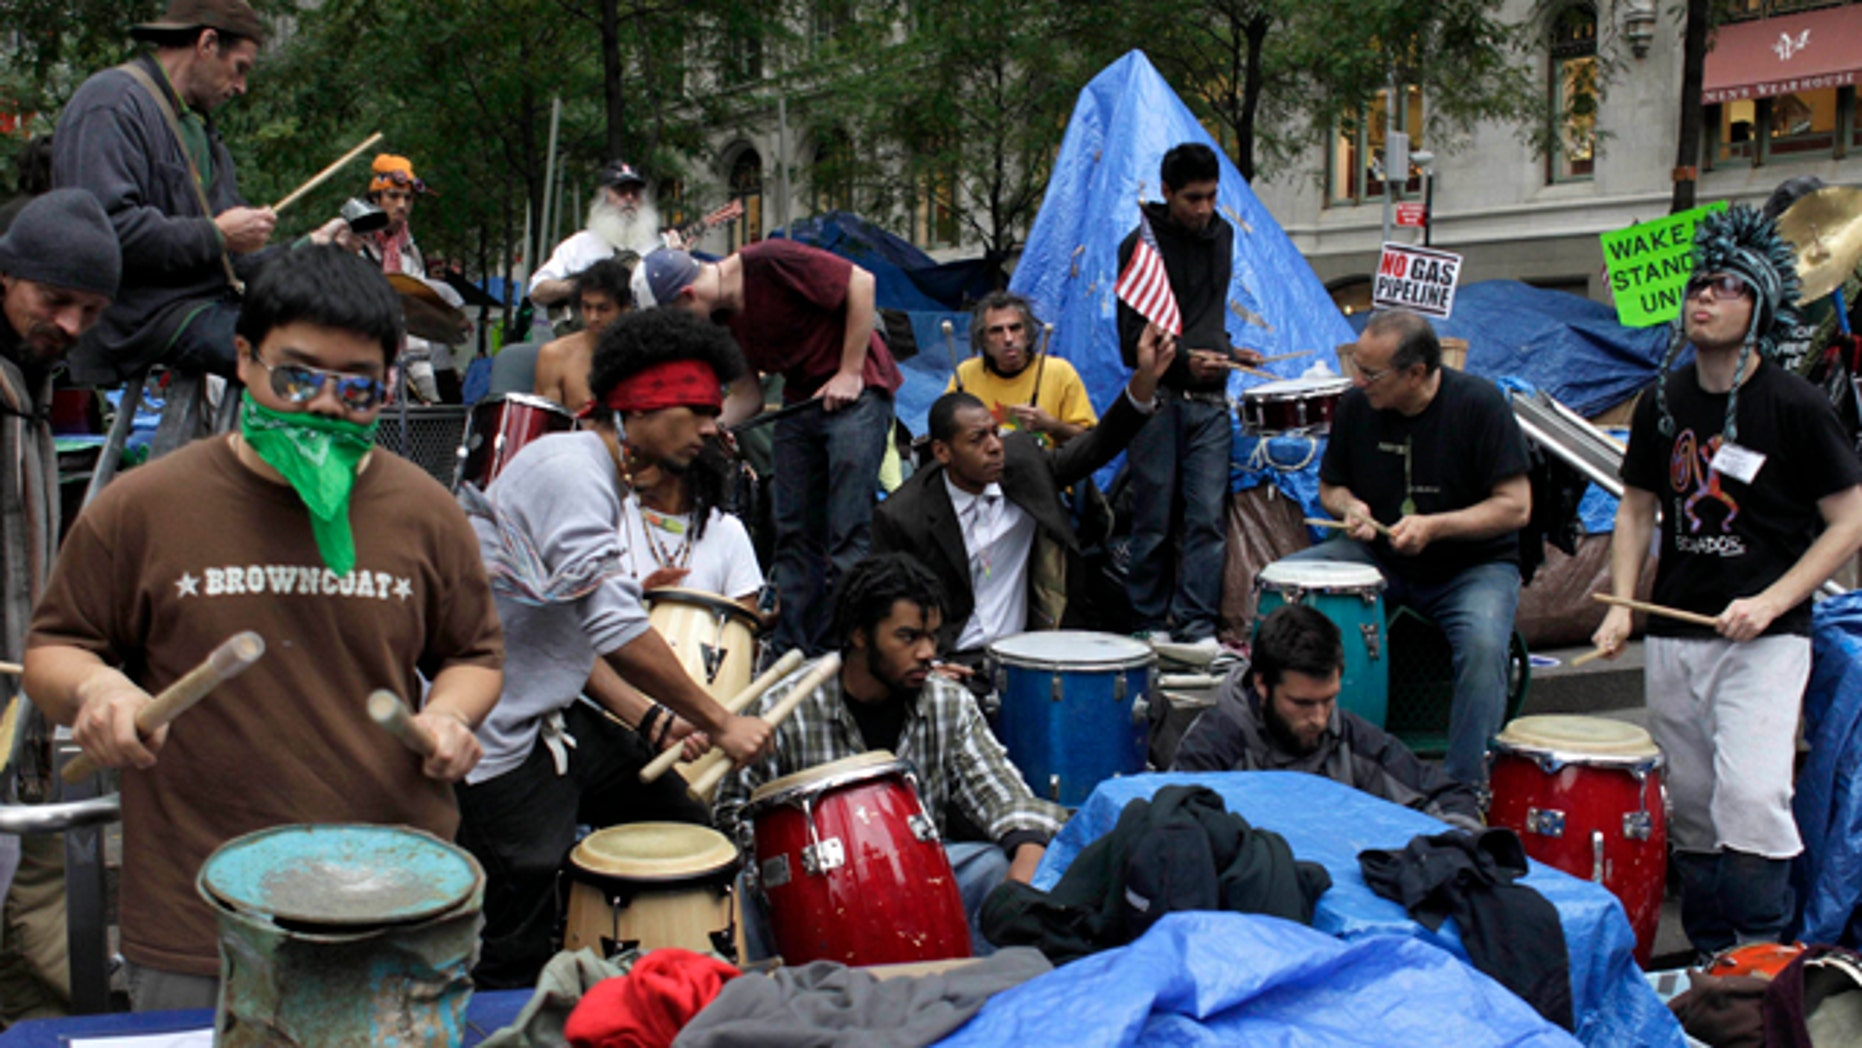 Oct. 26, 2011: Occupy Wall Street protesters play drums and other percussion instruments at Zuccotti Park in New York.